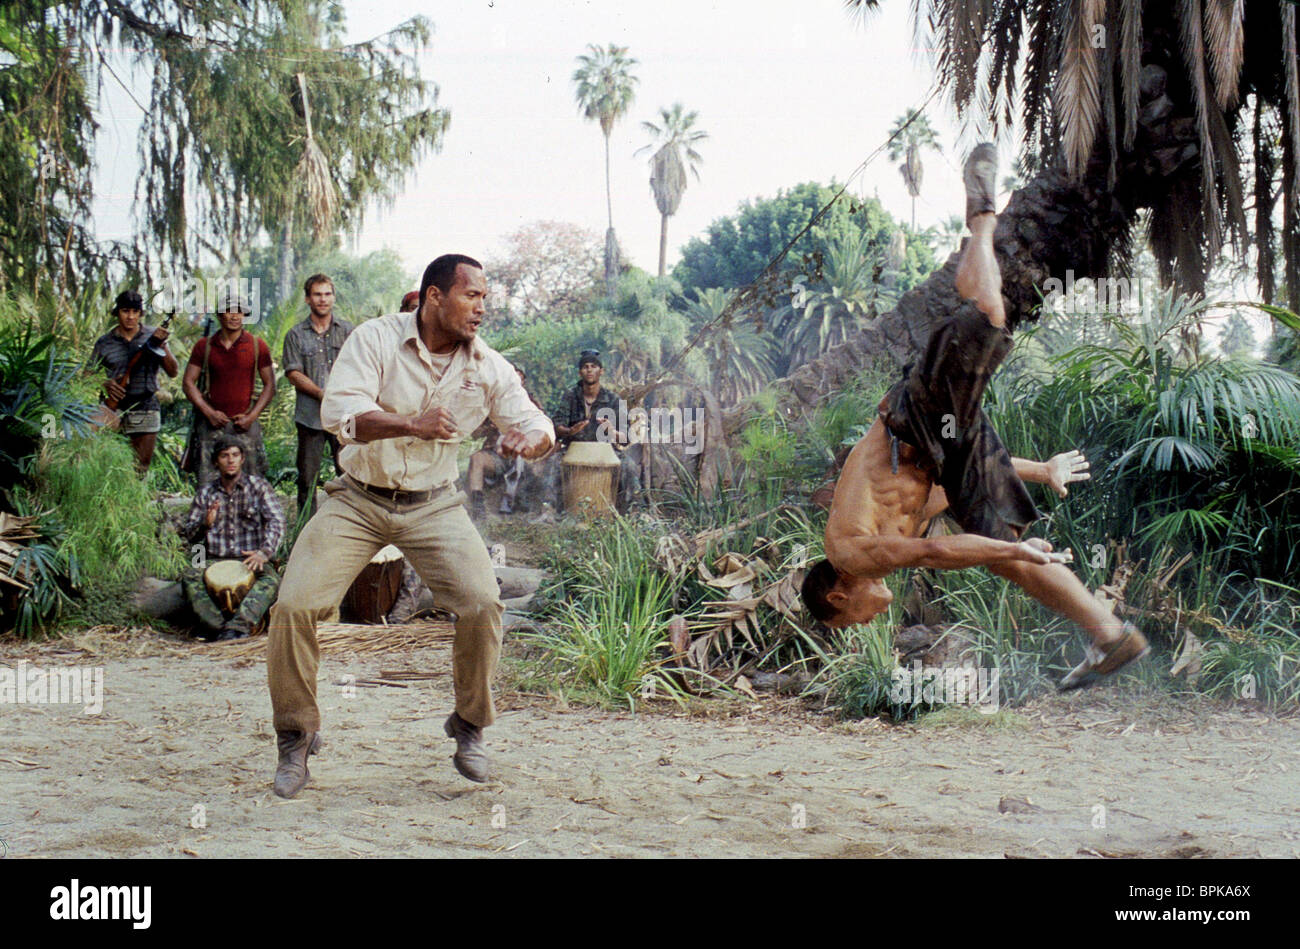 THE ROCK & ERNIE REYES JR. WELCOME TO THE JUNGLE; THE RUNDOWN (2003) - Stock Image